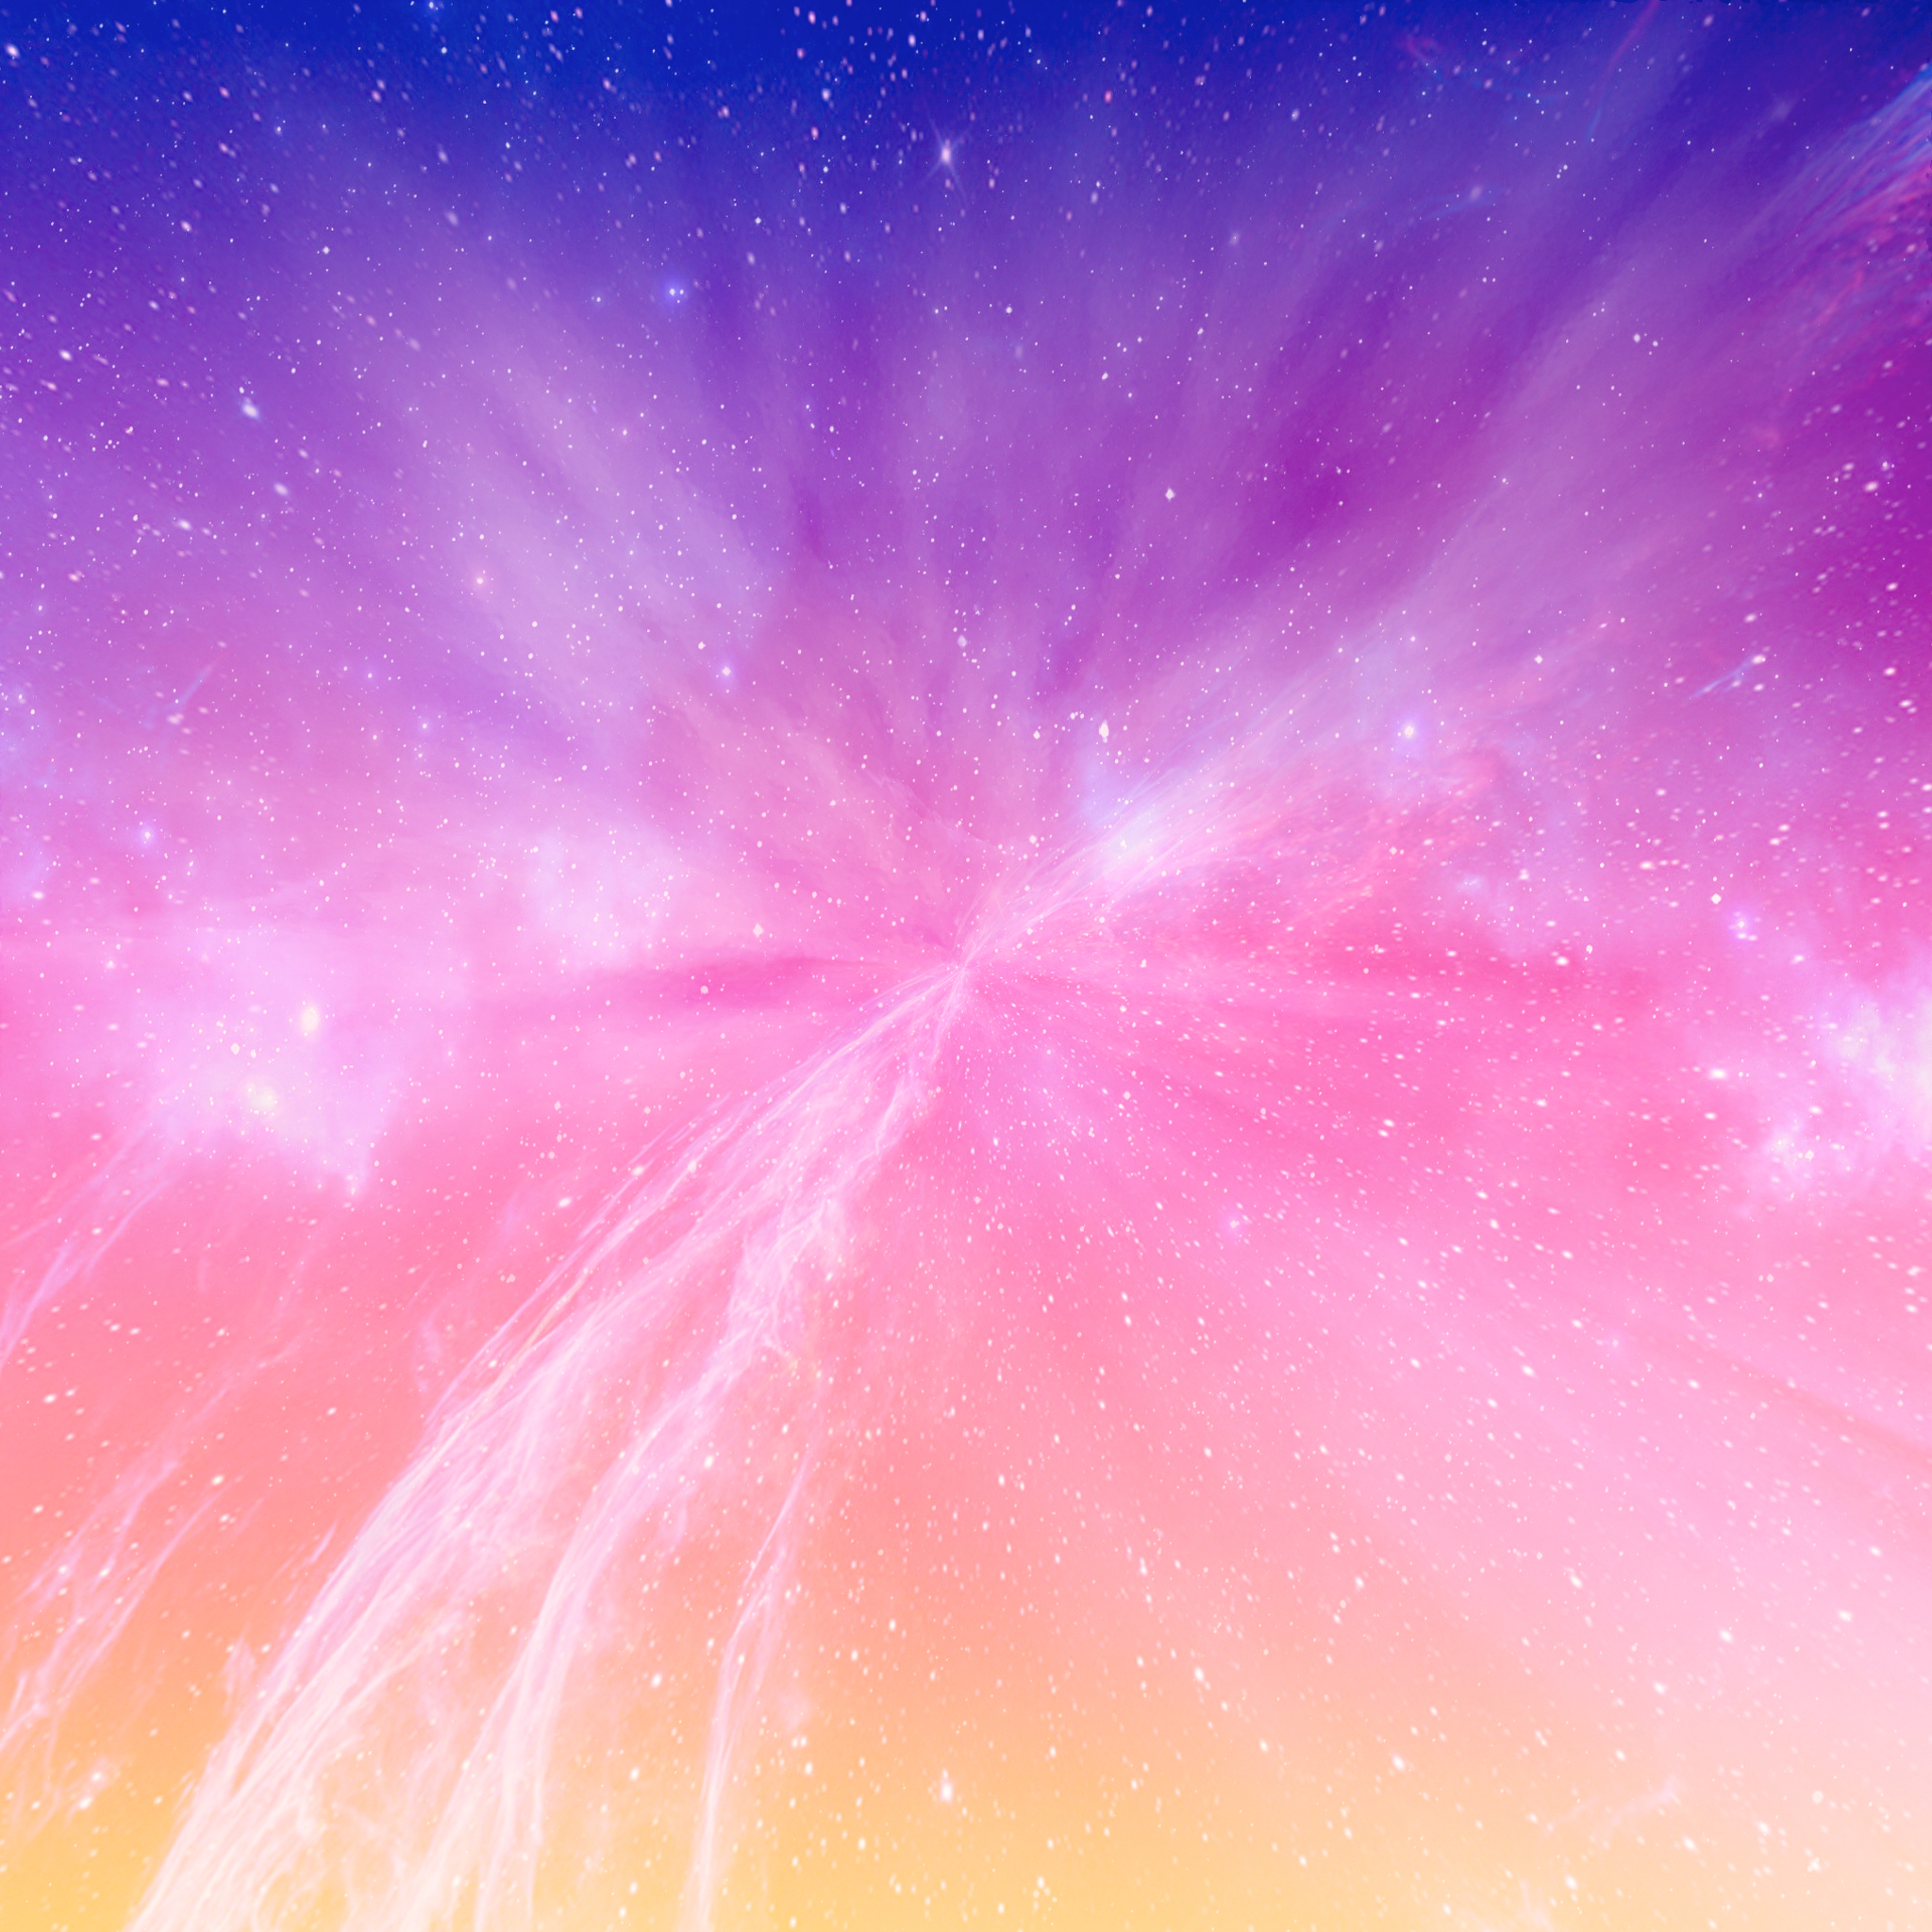 Colorful Iphone Wallpaper: Colorful Galaxy Wallpaper